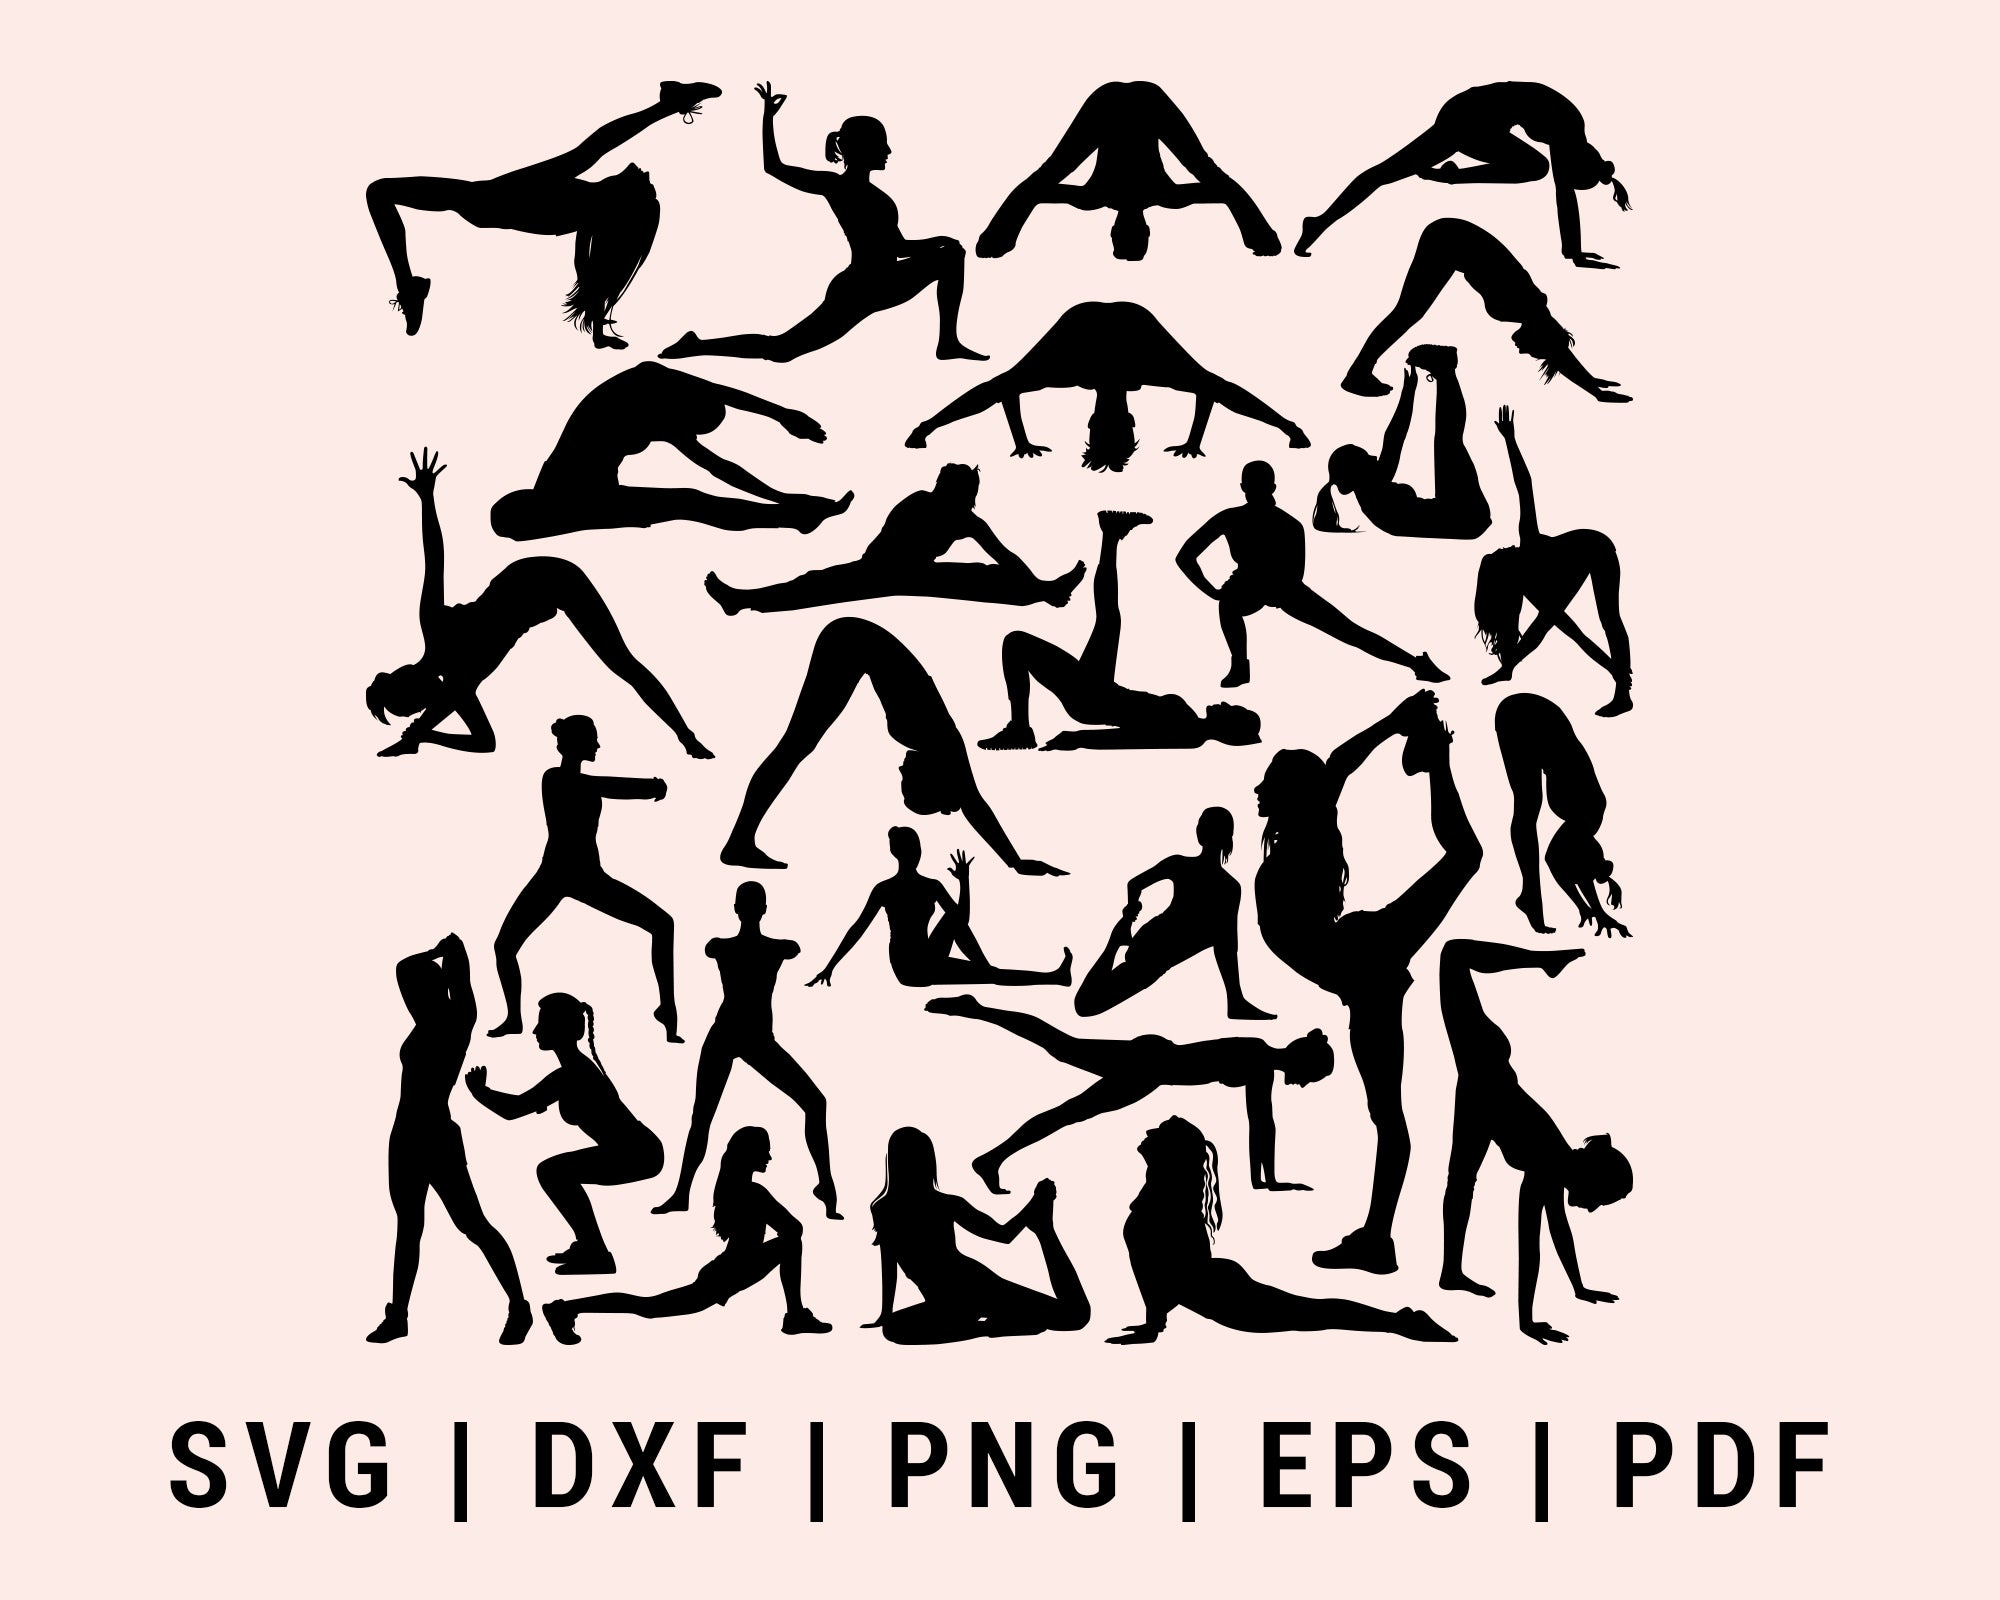 Yoga Mediation Fitness Exercise Practice Cut File For Cricut Bundle SVG, DXF, PNG, EPS, PDF Cricut Silhouette Printable Files